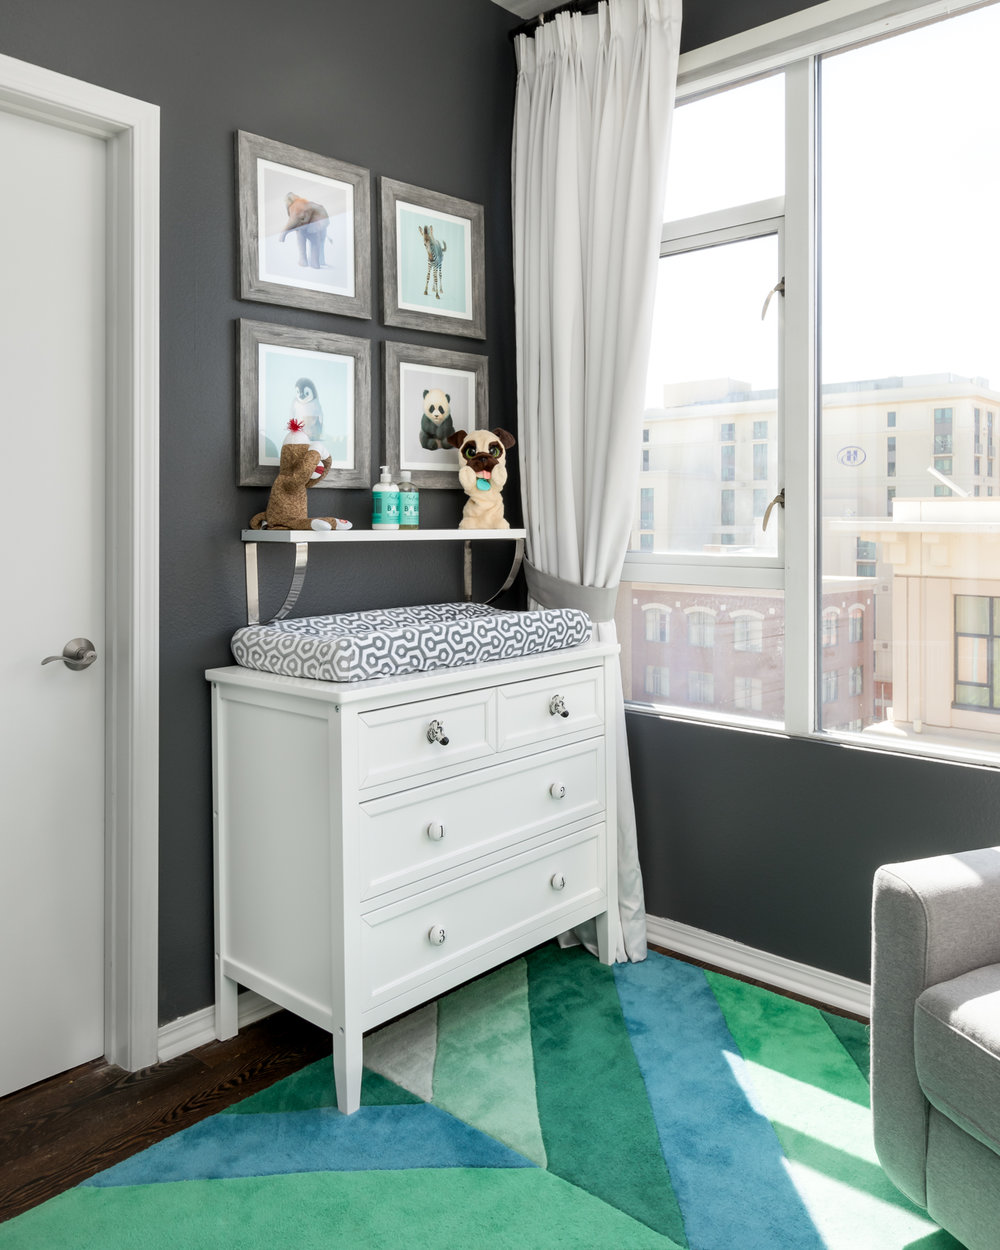 The dresser which doubles as a changing table was updated with zebra and number pulls. Working with a strict budget we paid attention to the little things like changing the hardware on an inexpensive dresser to give it a custom feel without the price tag.